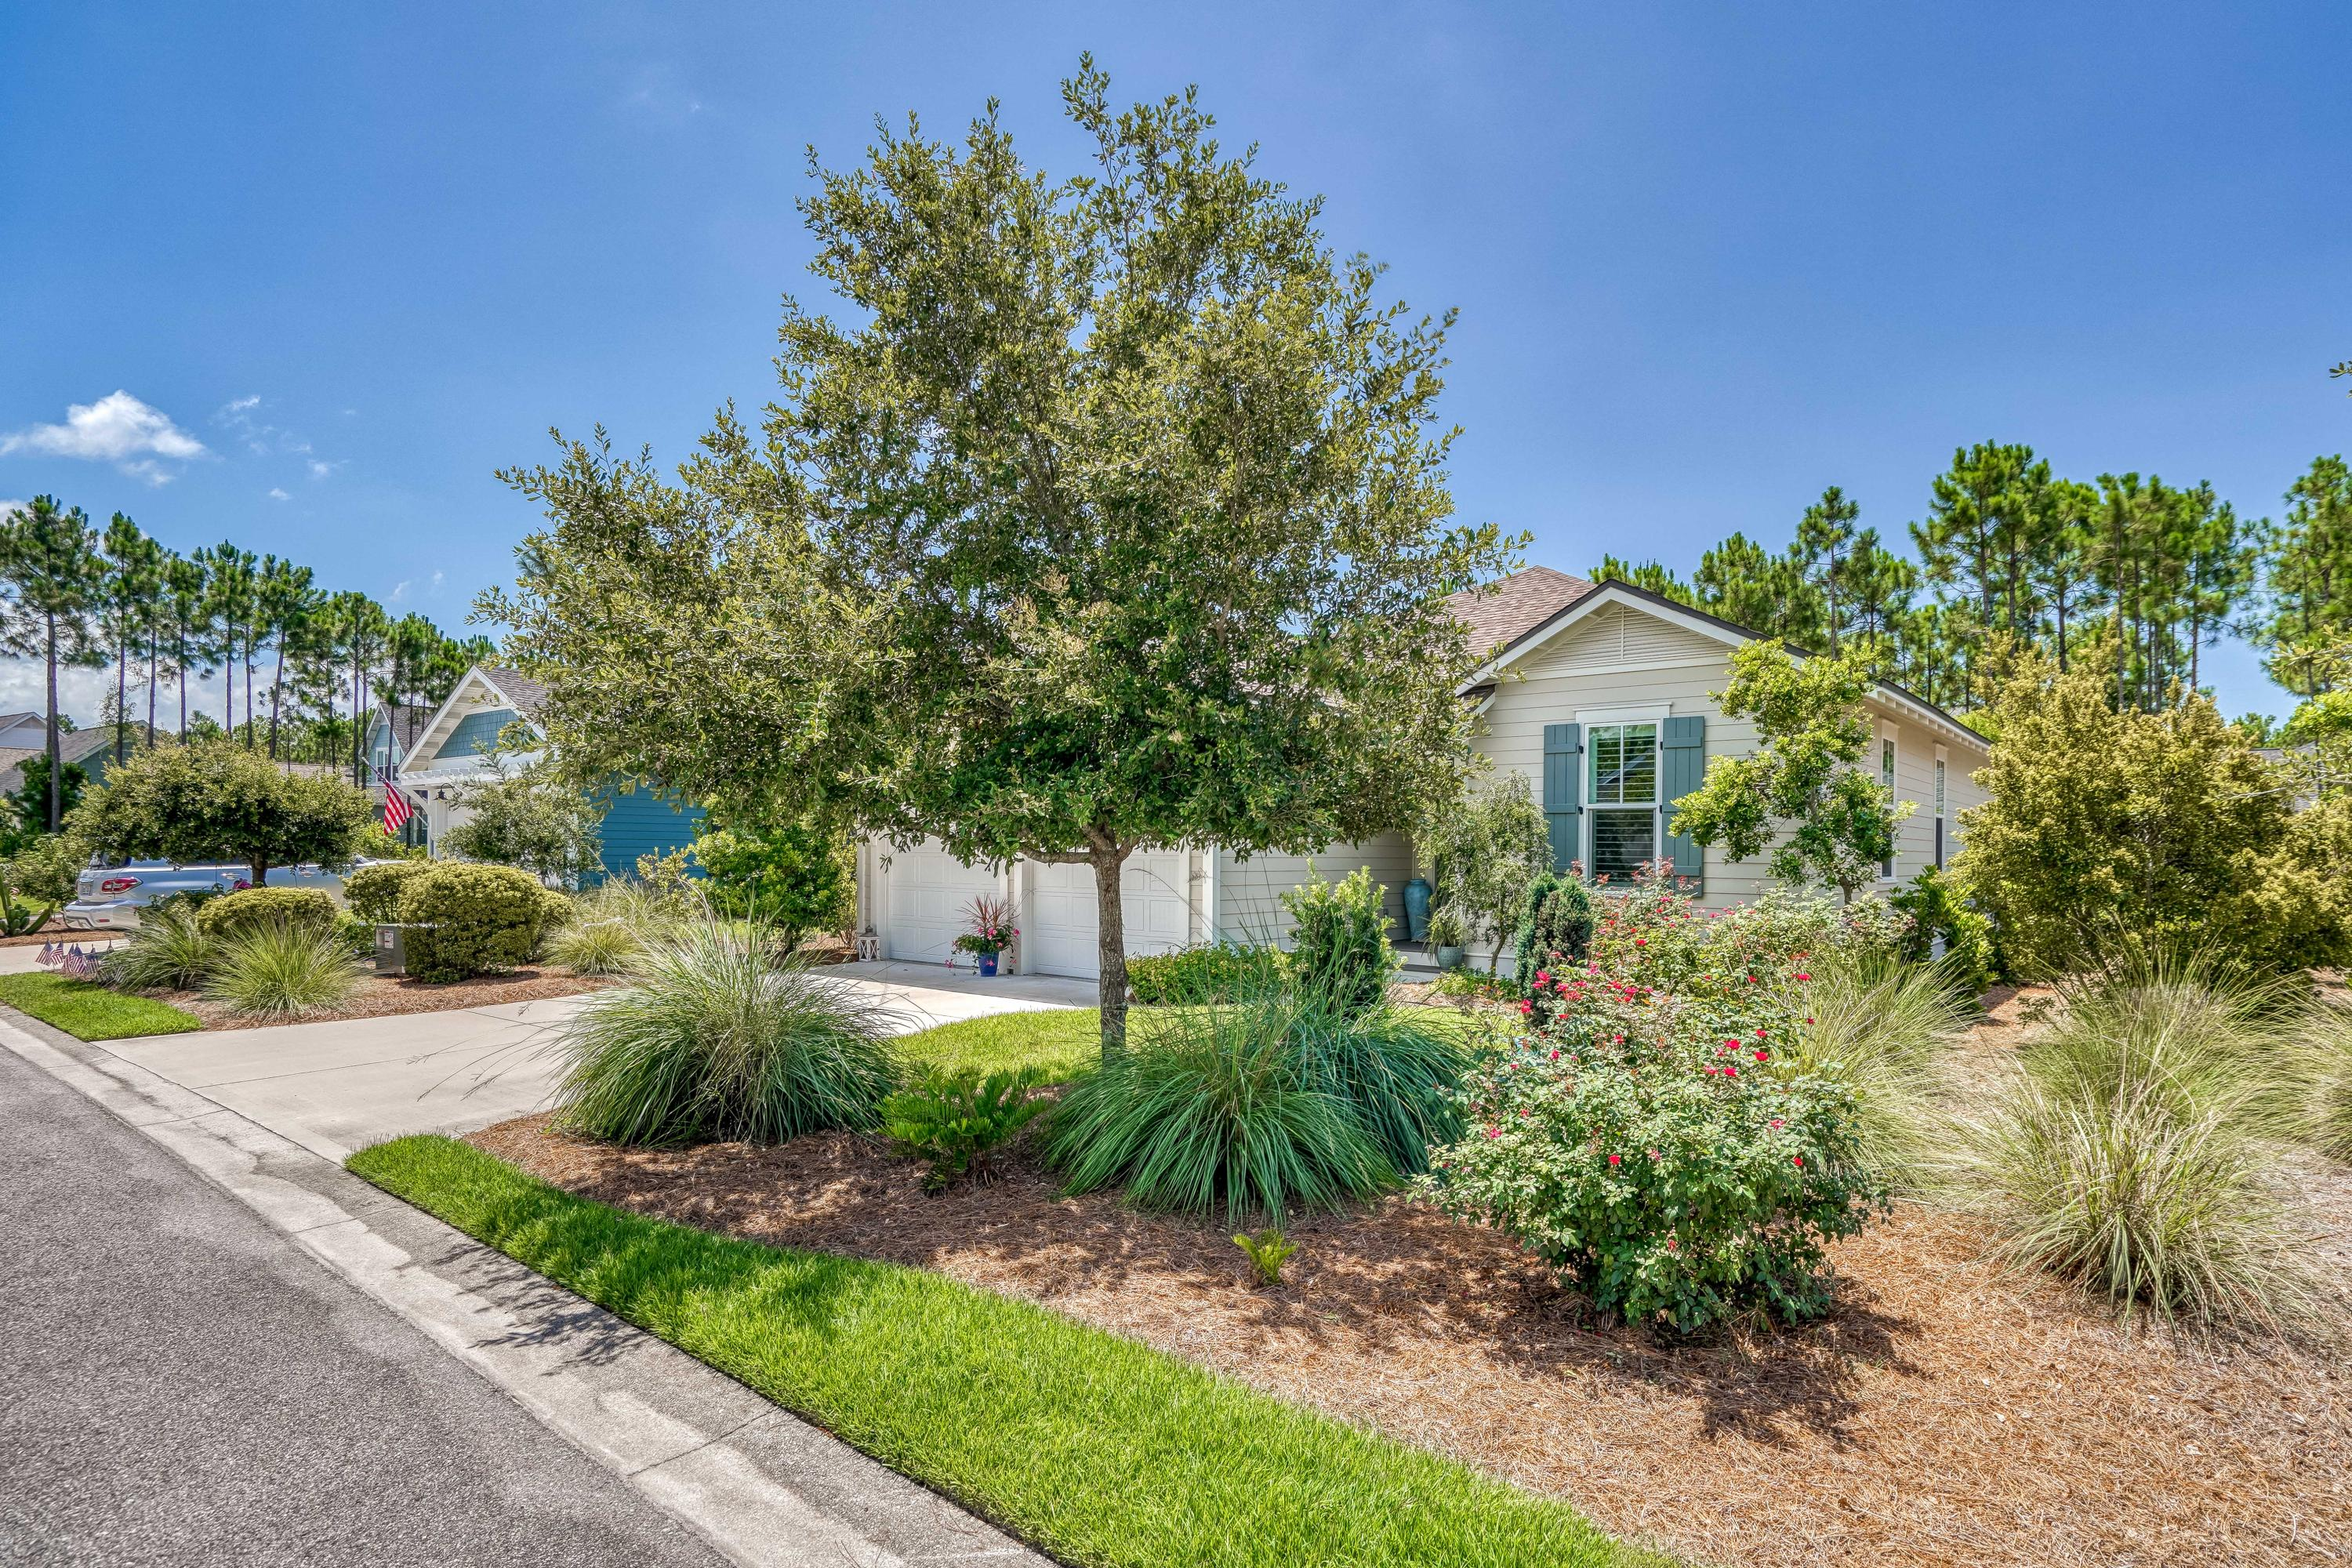 The Best Deal in WaterSound Origins ! Cozy Florida Cottage with 3 bedrooms and 2 bathrooms and a ple